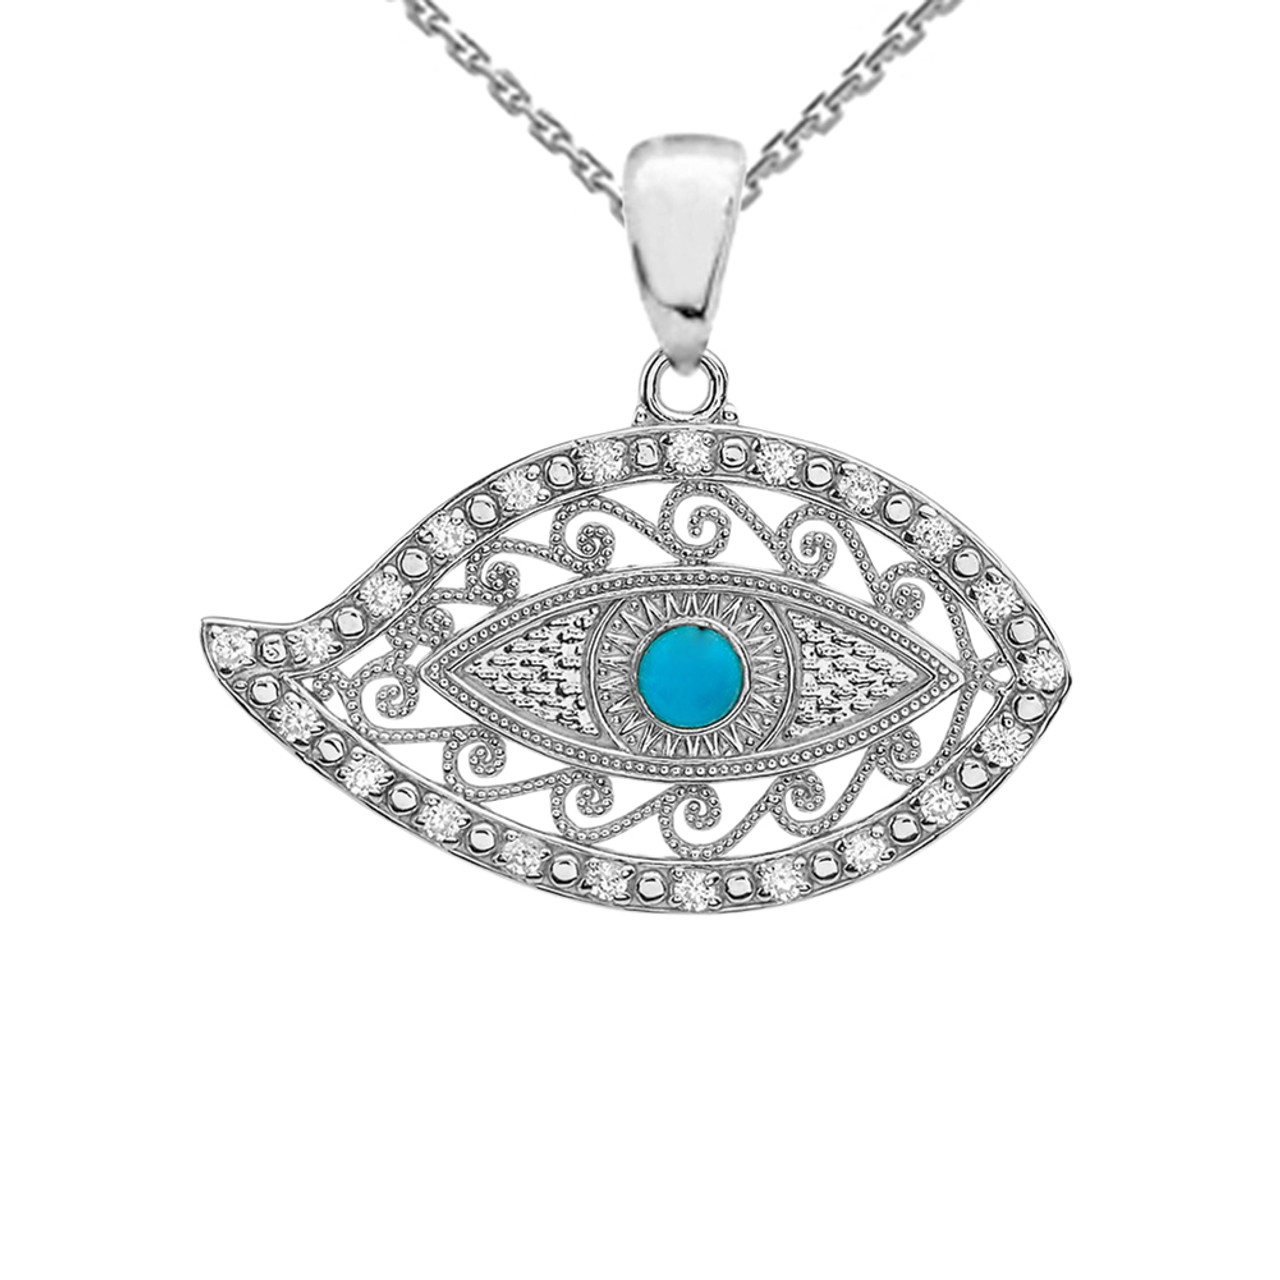 White gold evil eye diamond pendant necklace with turquoise center stone aloadofball Image collections